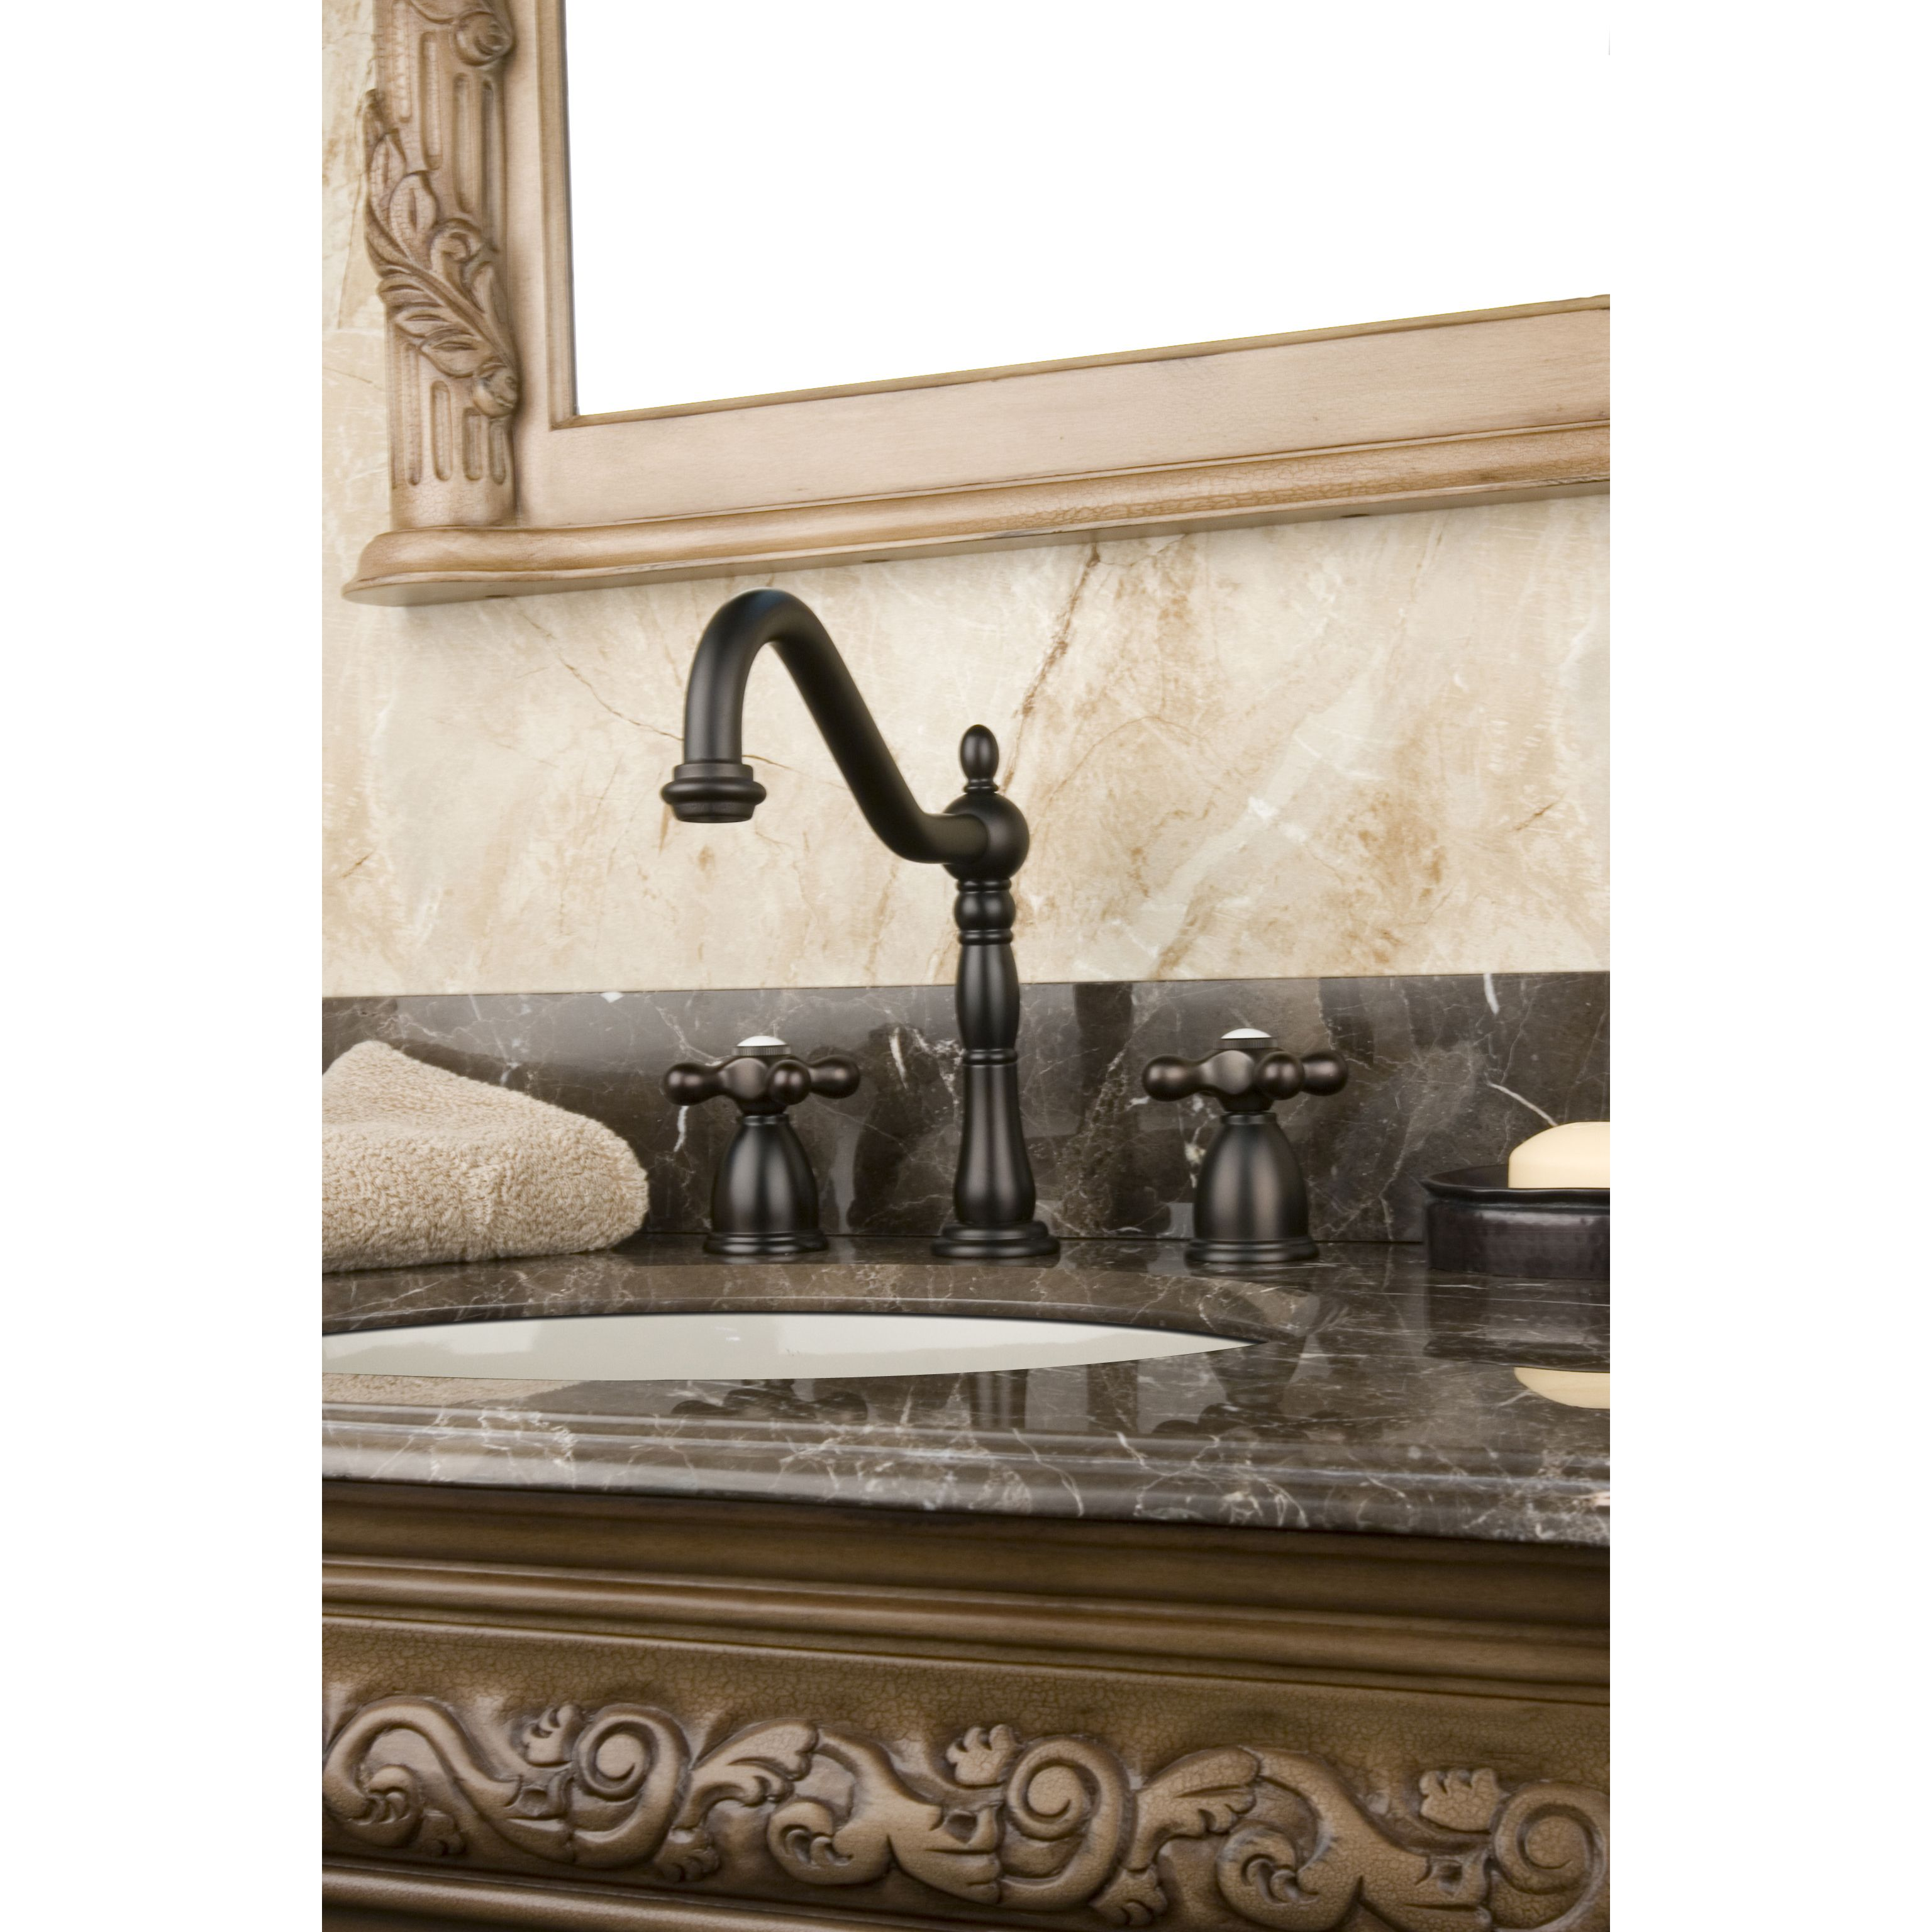 This Widespread Oil Rubbed Bronze Bathroom Faucet Is A Living Color That  Will Gradually Darken As